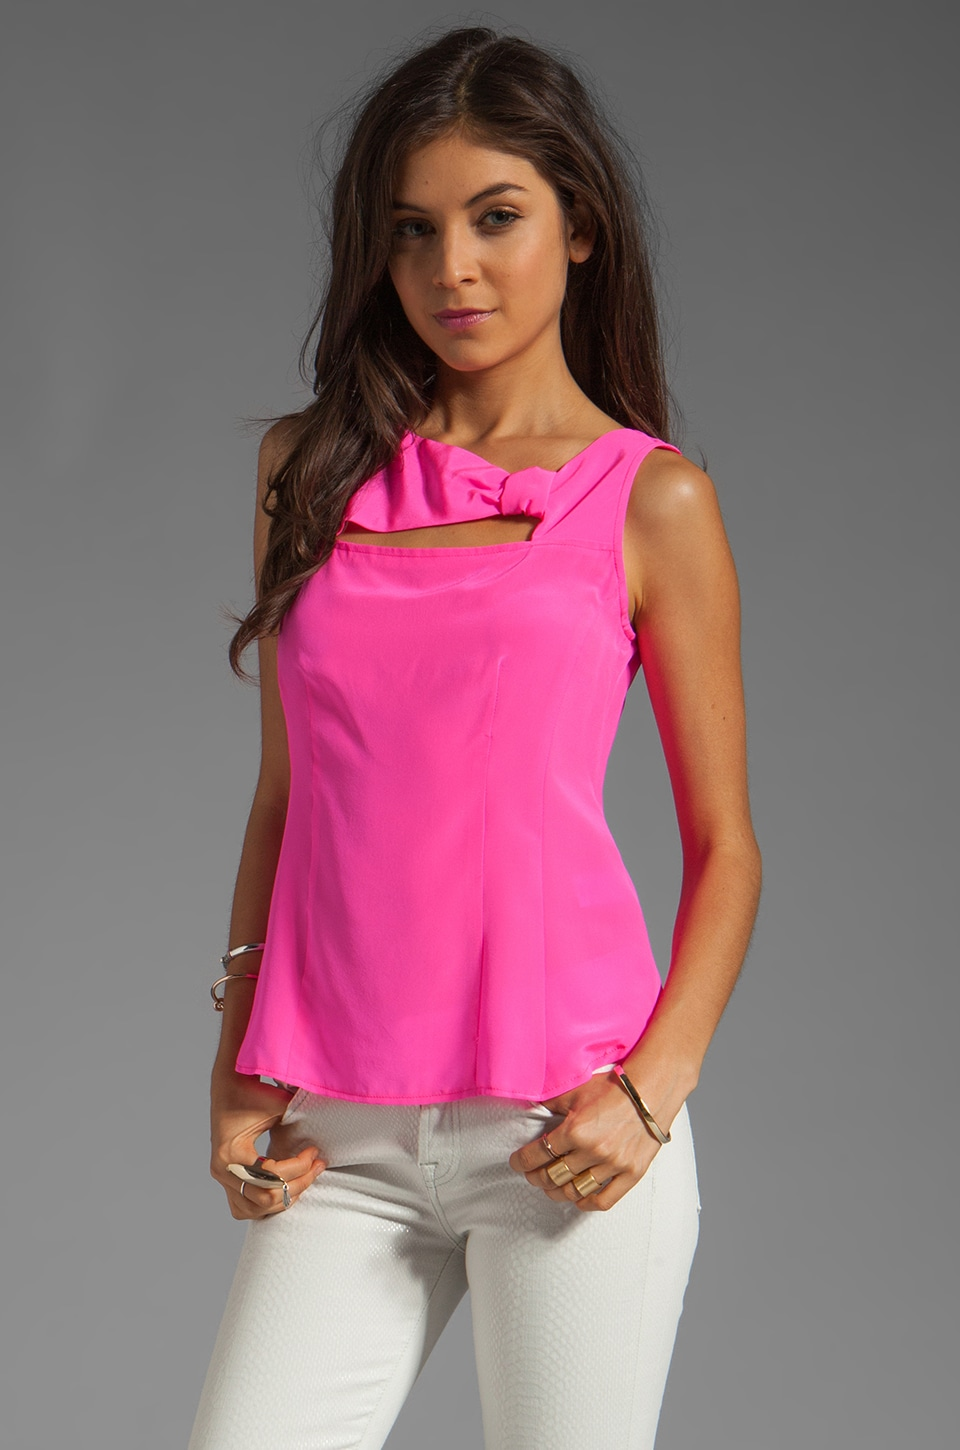 Nanette Lepore Venus Top in Bubblegum